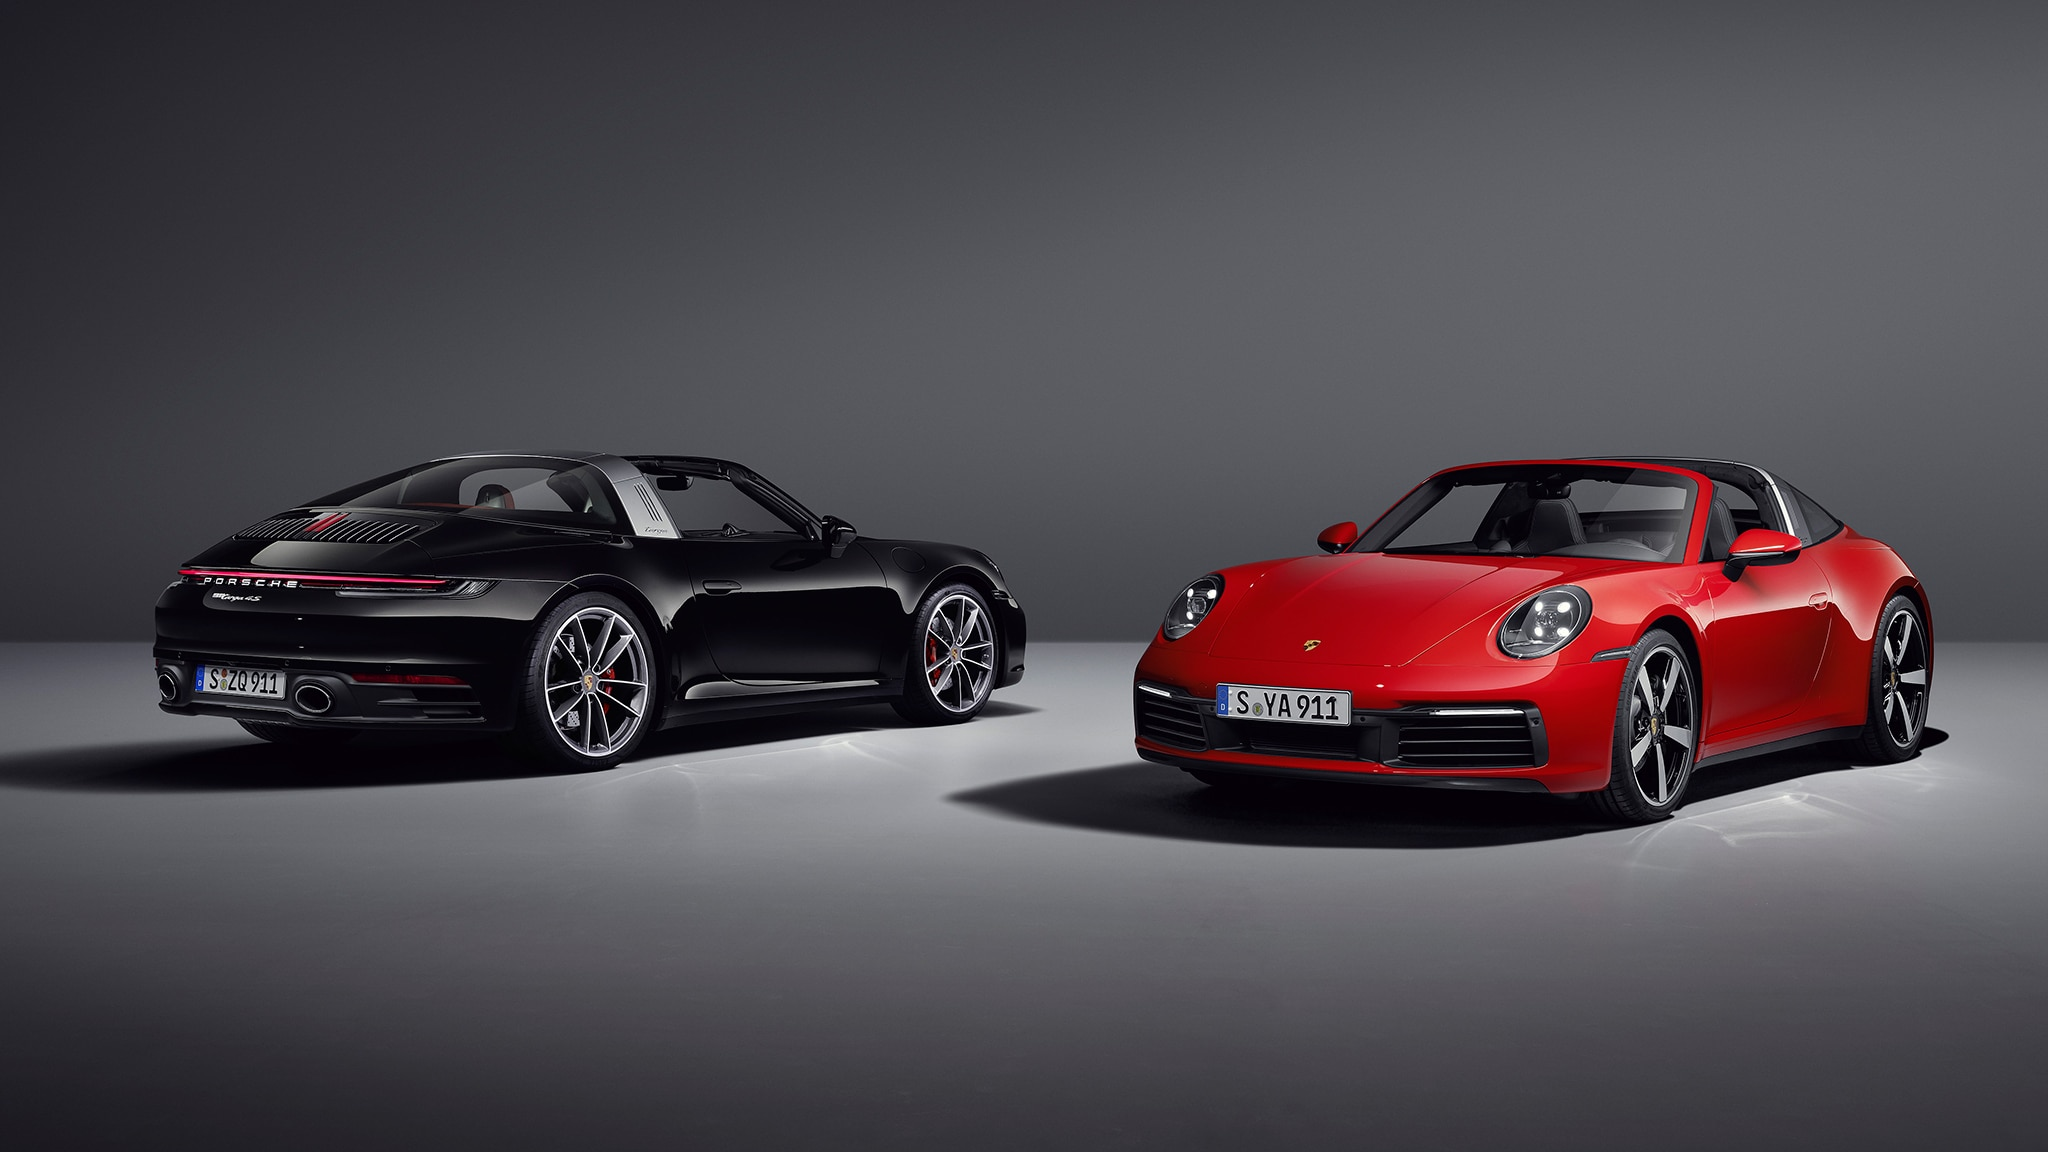 The Targa Is Back The New 2021 Porsche 911 Targa 4 And Targa 4s Are The Perfect Cold Weather Convertibles